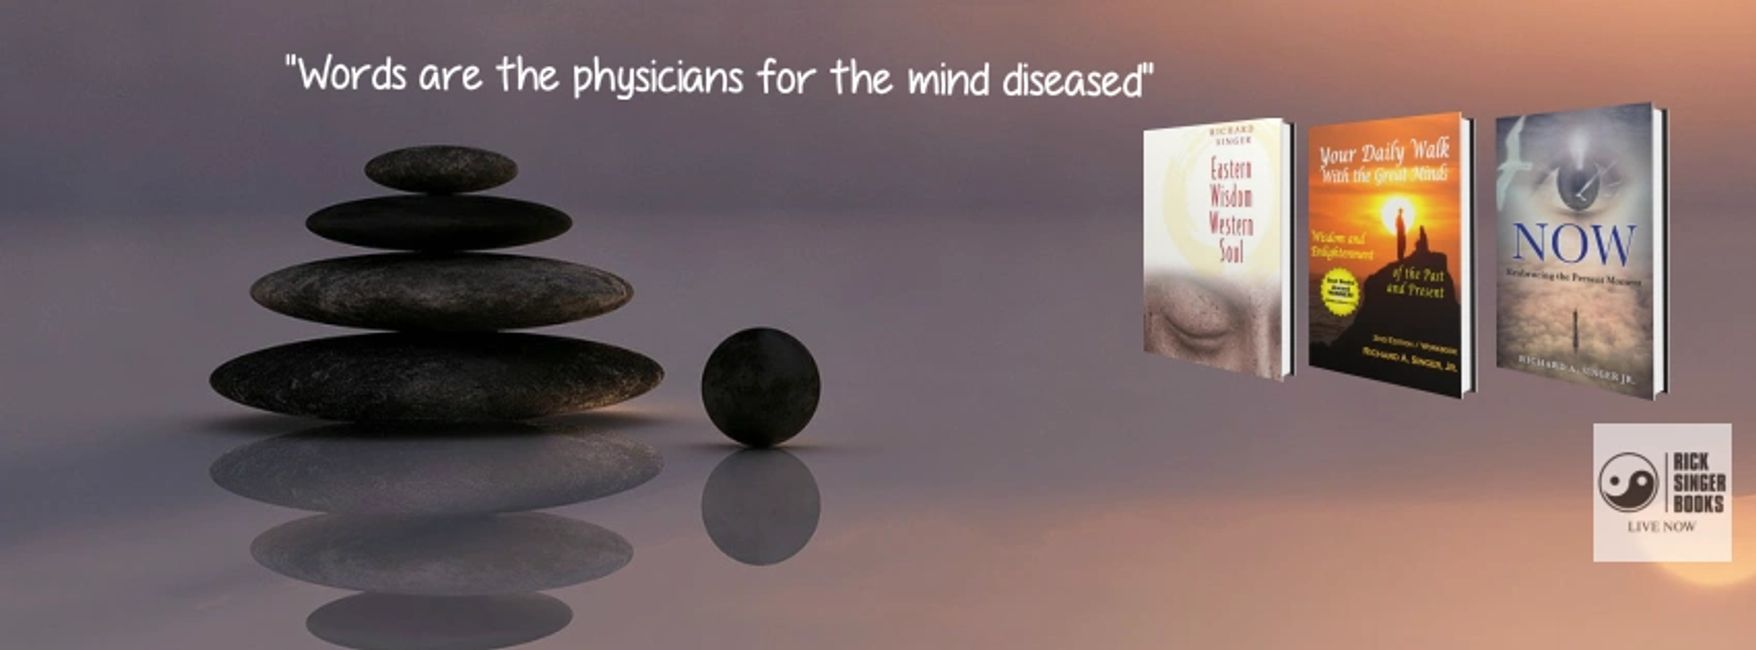 Words are the physicians for the mind diseased quote.  Image featuring Richard Singer's Books and a